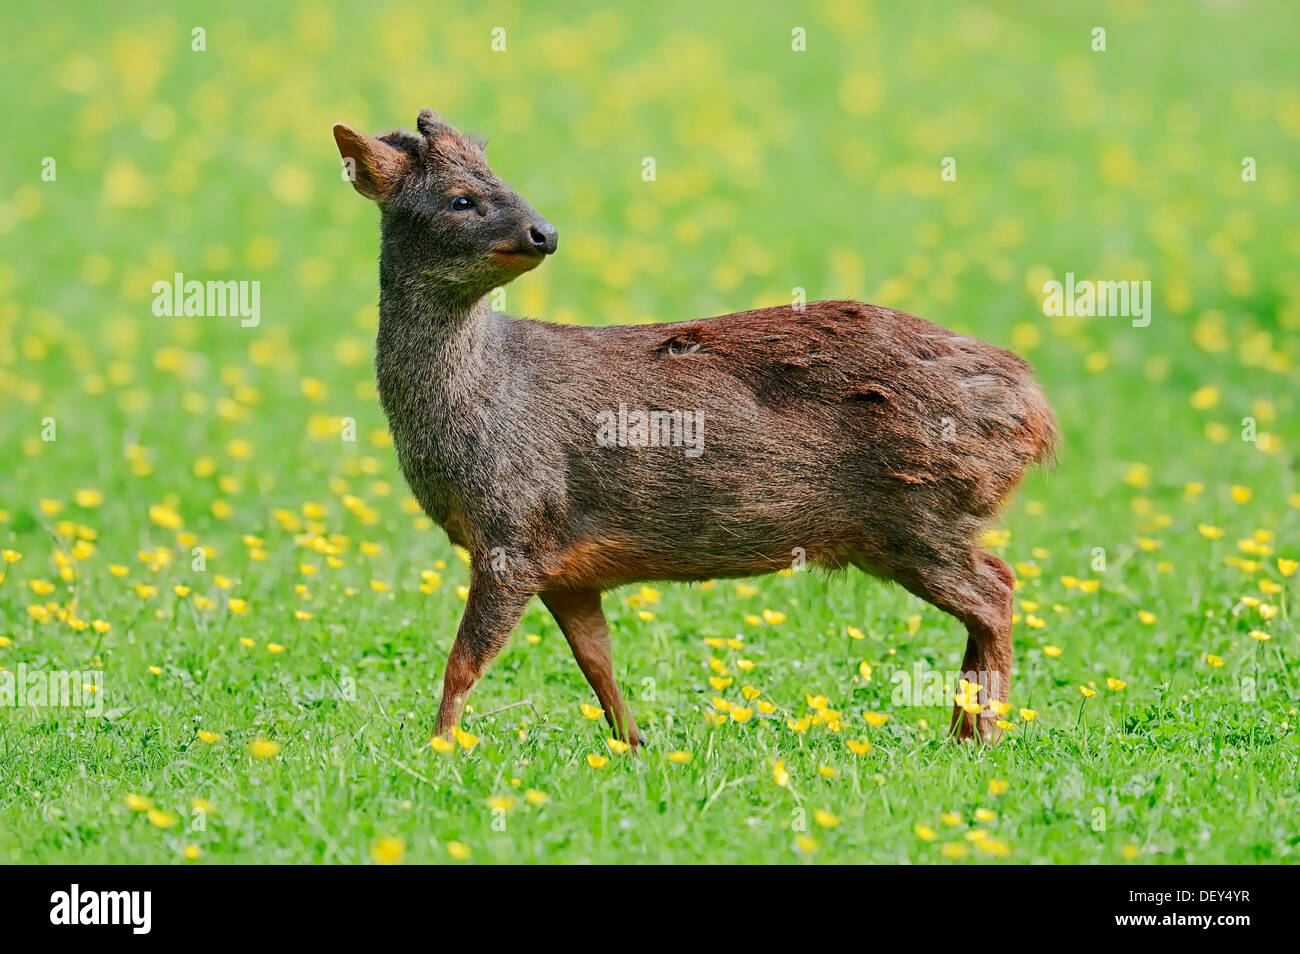 Southern Pudu (Pudu pudu), male standing in a flower meadow, native to South America, captive, The Netherlands - Stock Image